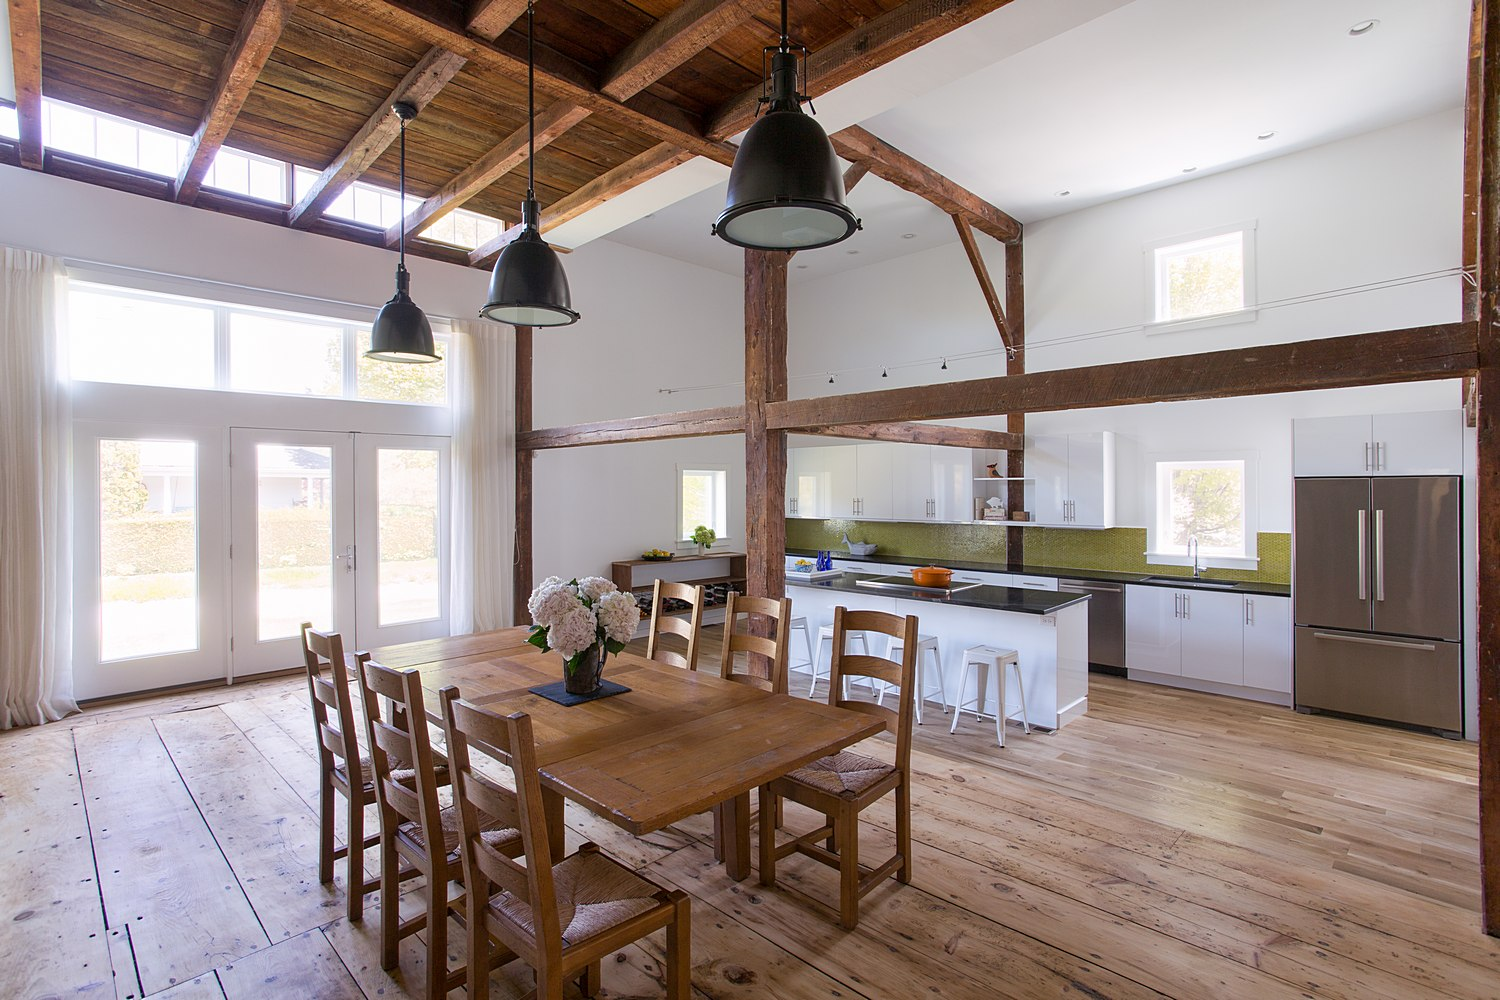 Renovated barn with open concept design